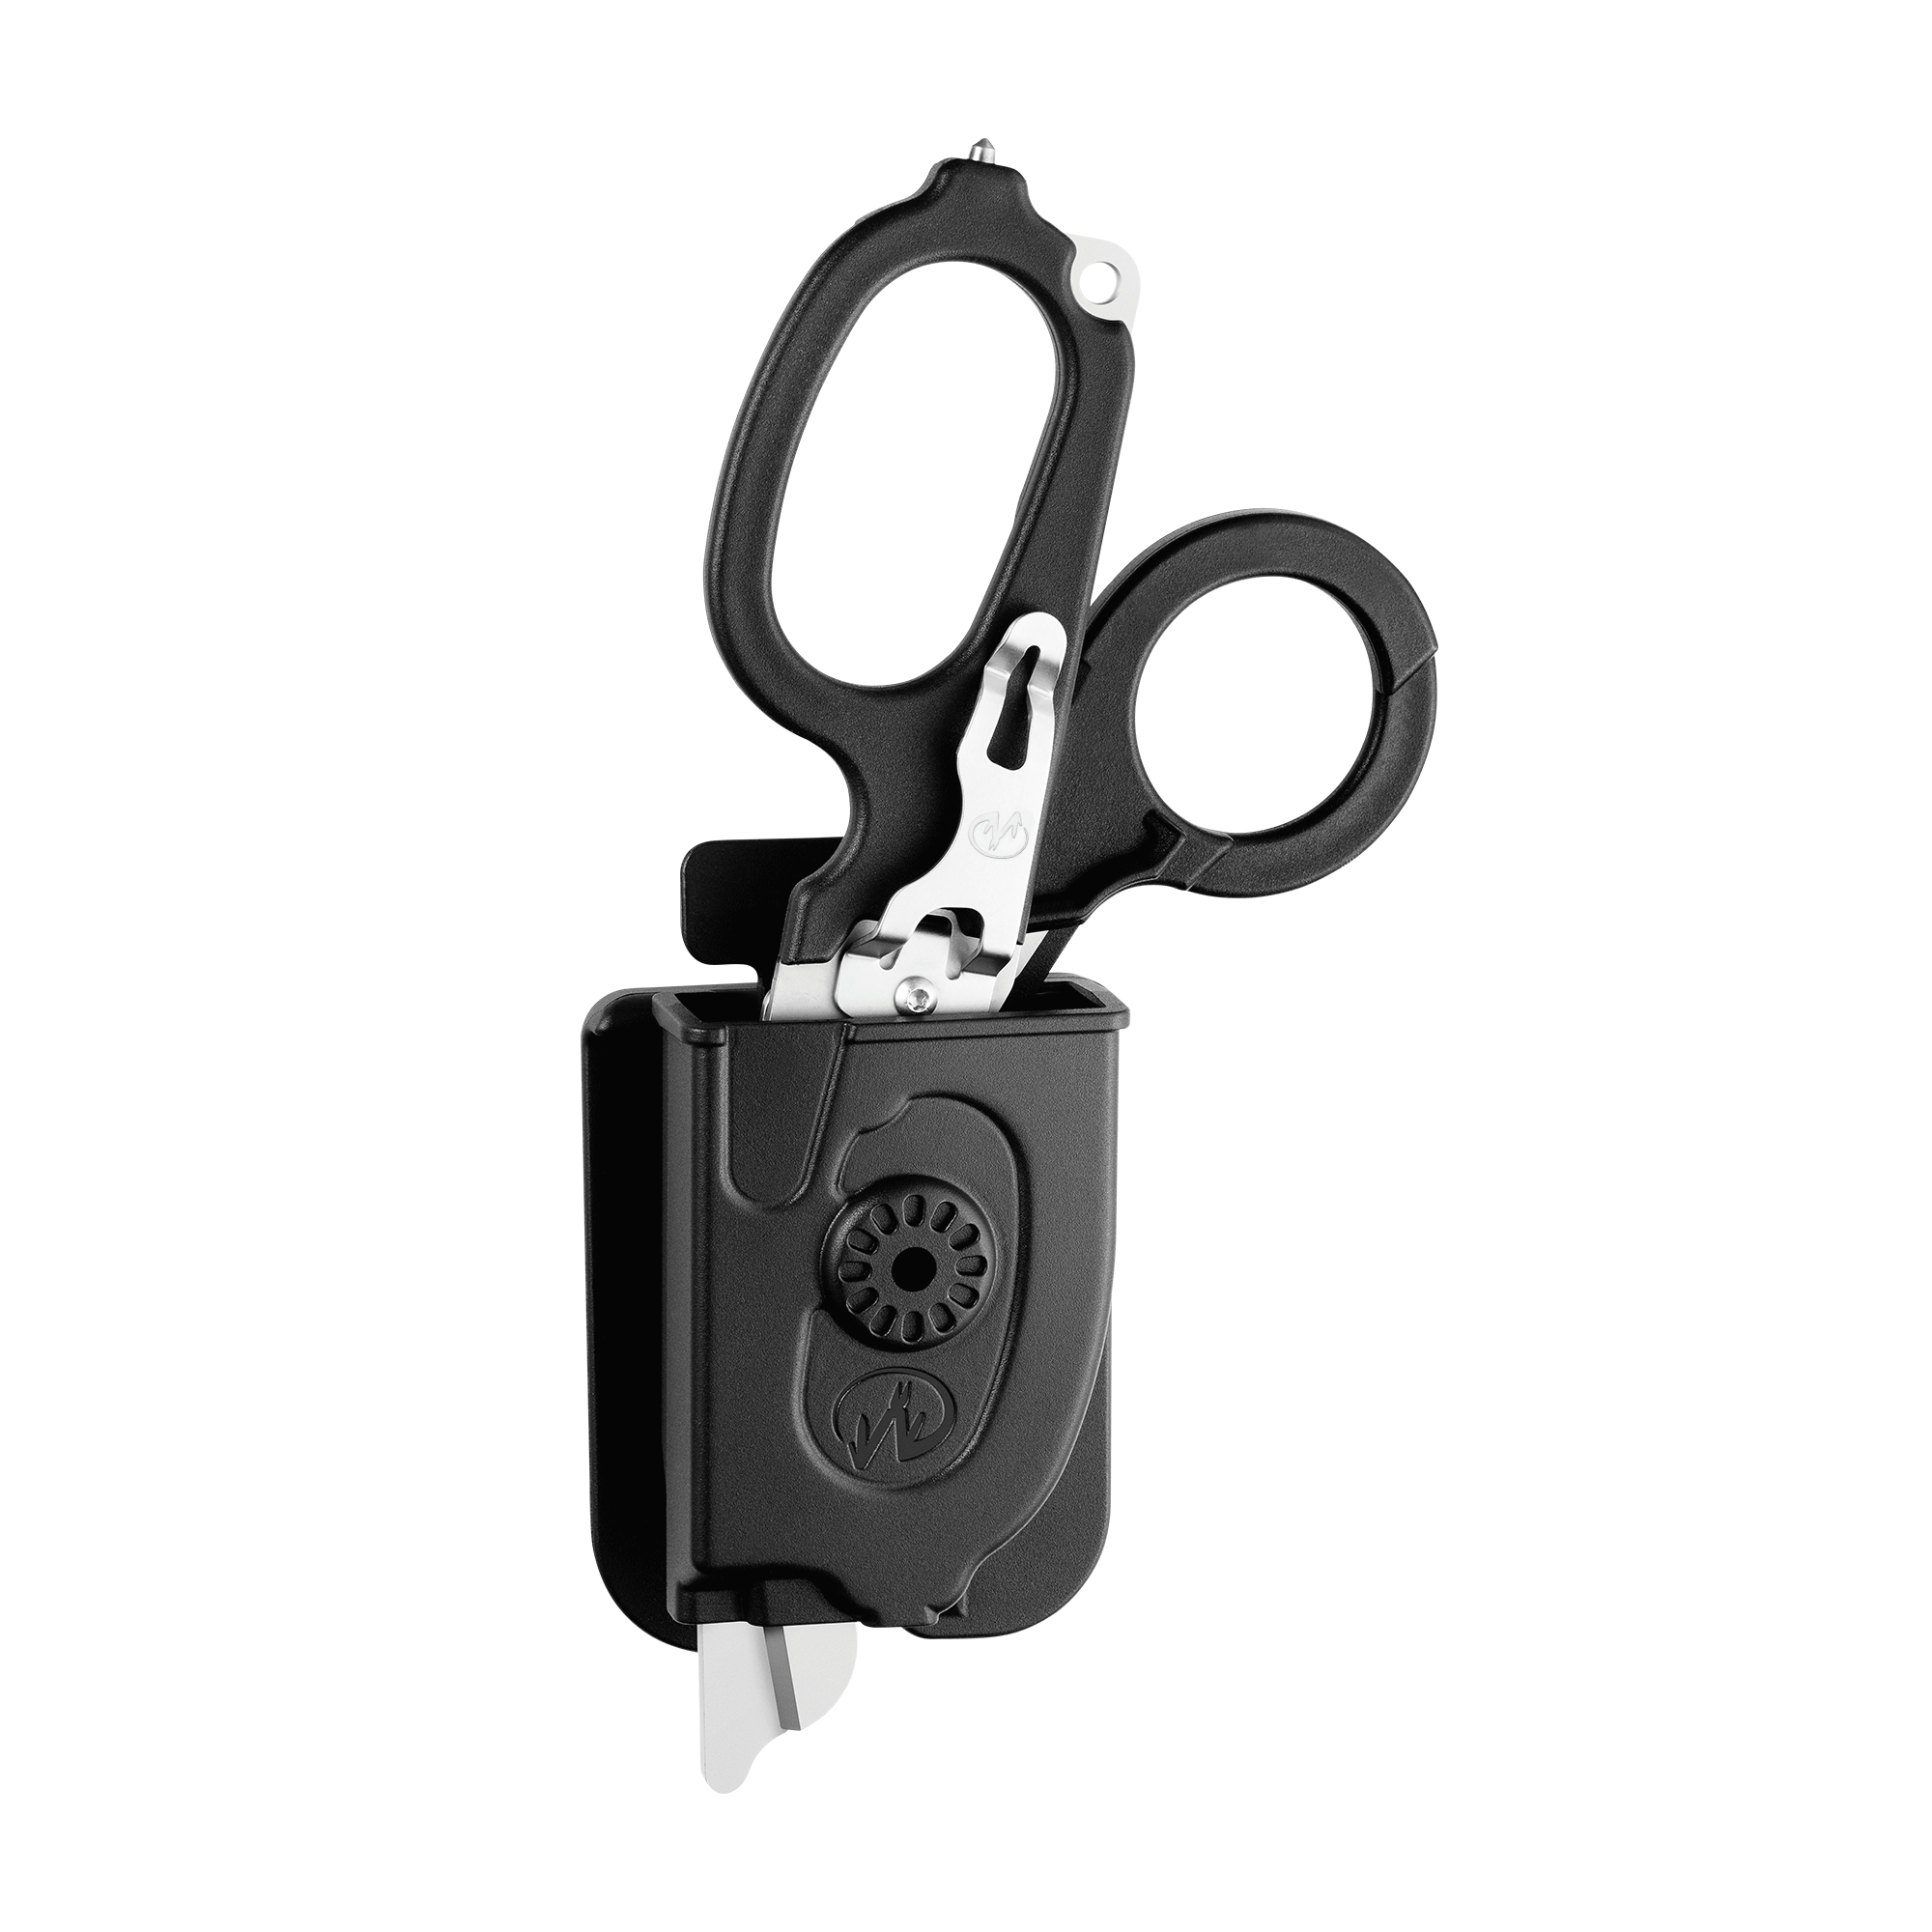 Leatherman Signal shears, black, in holster